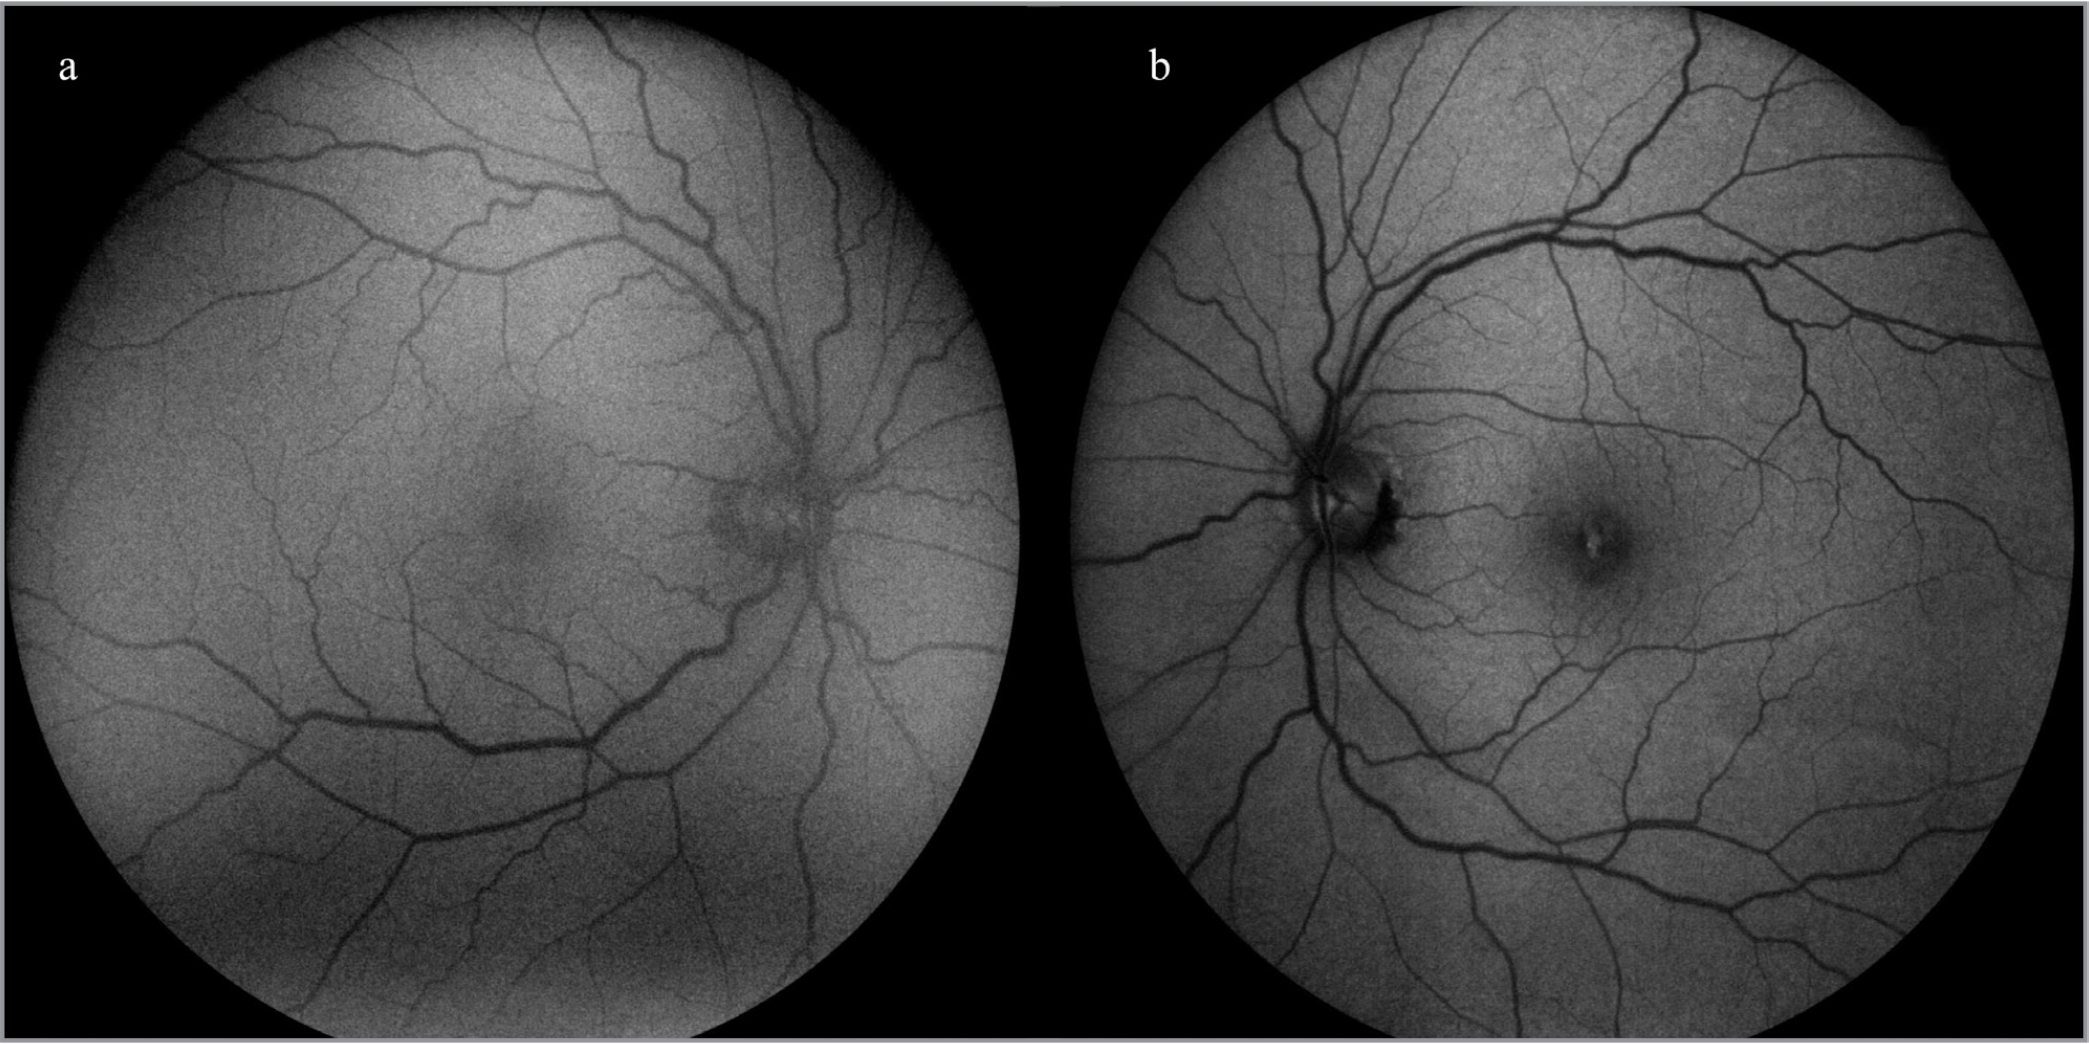 Fundus autofluorescence showing mild foveal hypoautofluorescence in the right eye (a) and central, focal, hyperautofluorescence surrounded by a diffuse rim of hypoautofluorescence in the left eye (b).